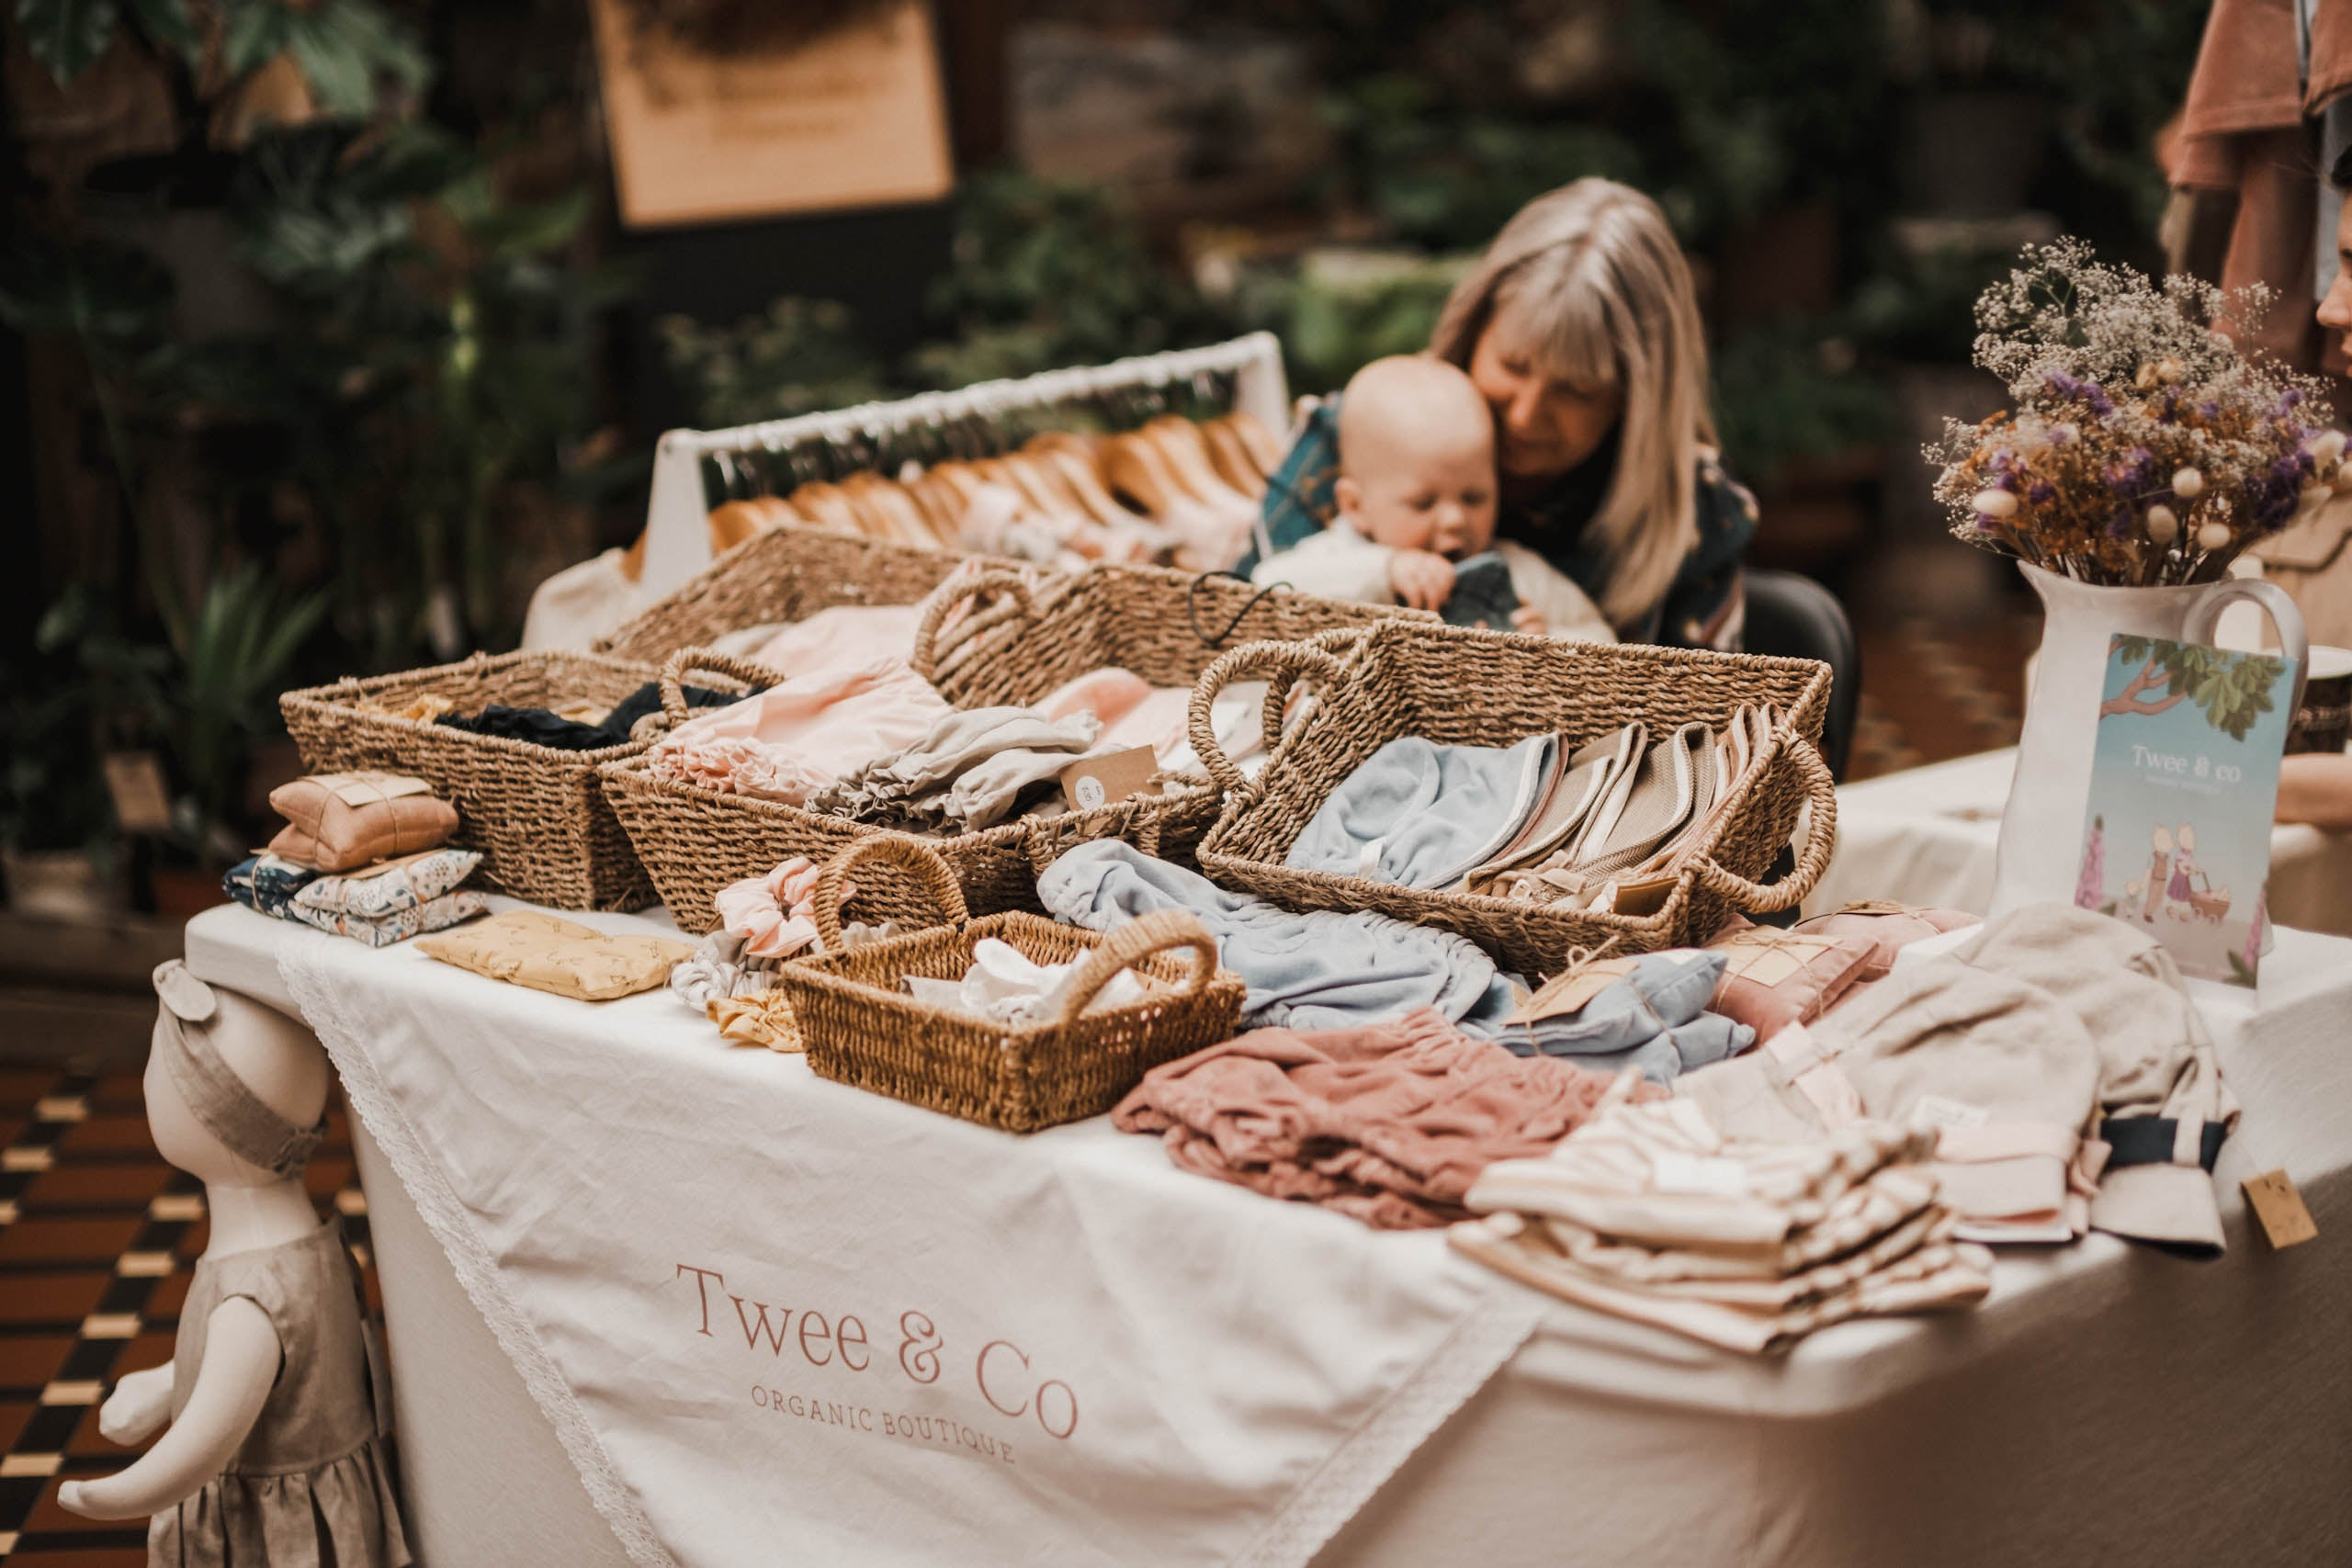 Visit Twee & Co at local Markets